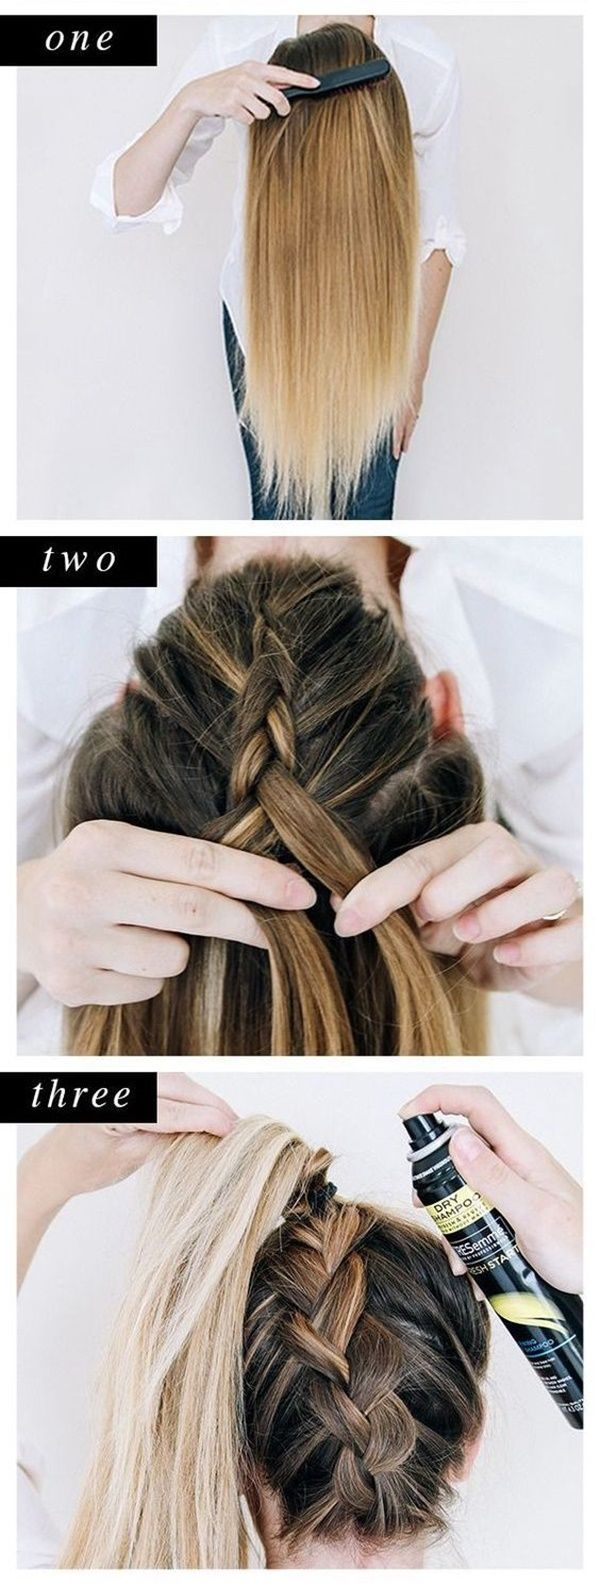 40 Easy Step By Step Hairstyles For Girls | Easy work hairstyles, Hairstyles for medium length ...